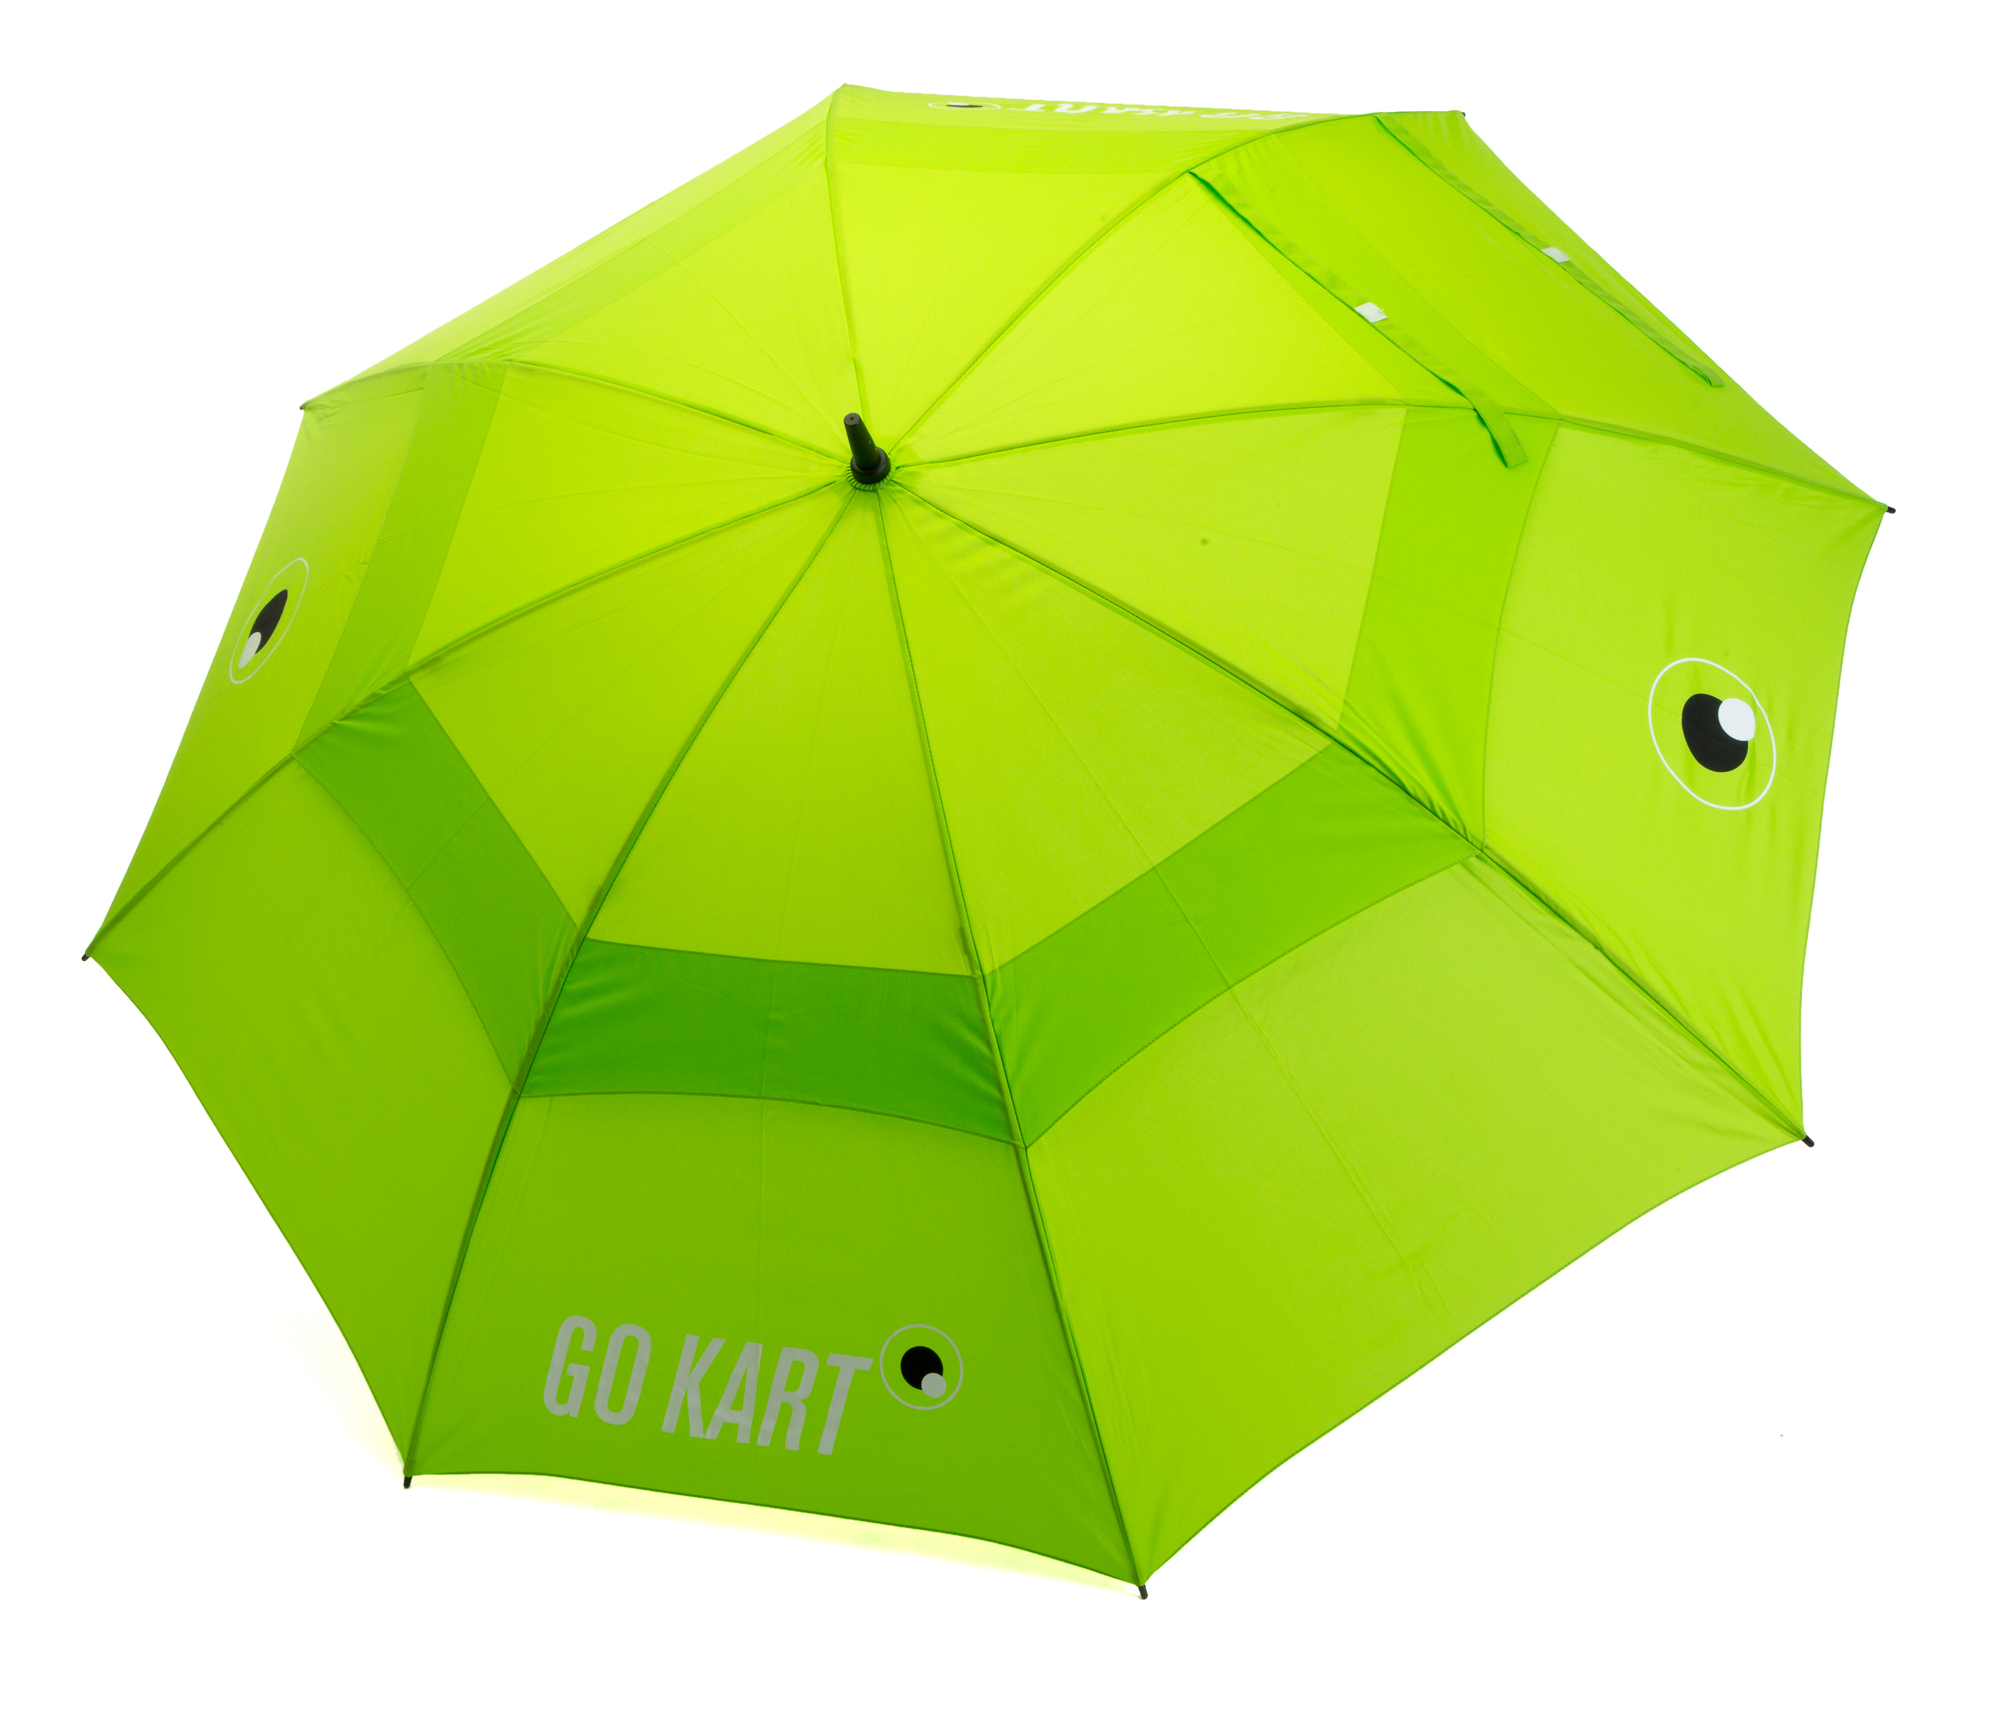 0c0aeb980a34f This is our full size golf umbrella. With a strong but lightweight frame,  and a dual canopy and storm proof design. Available in six colours to match  your ...